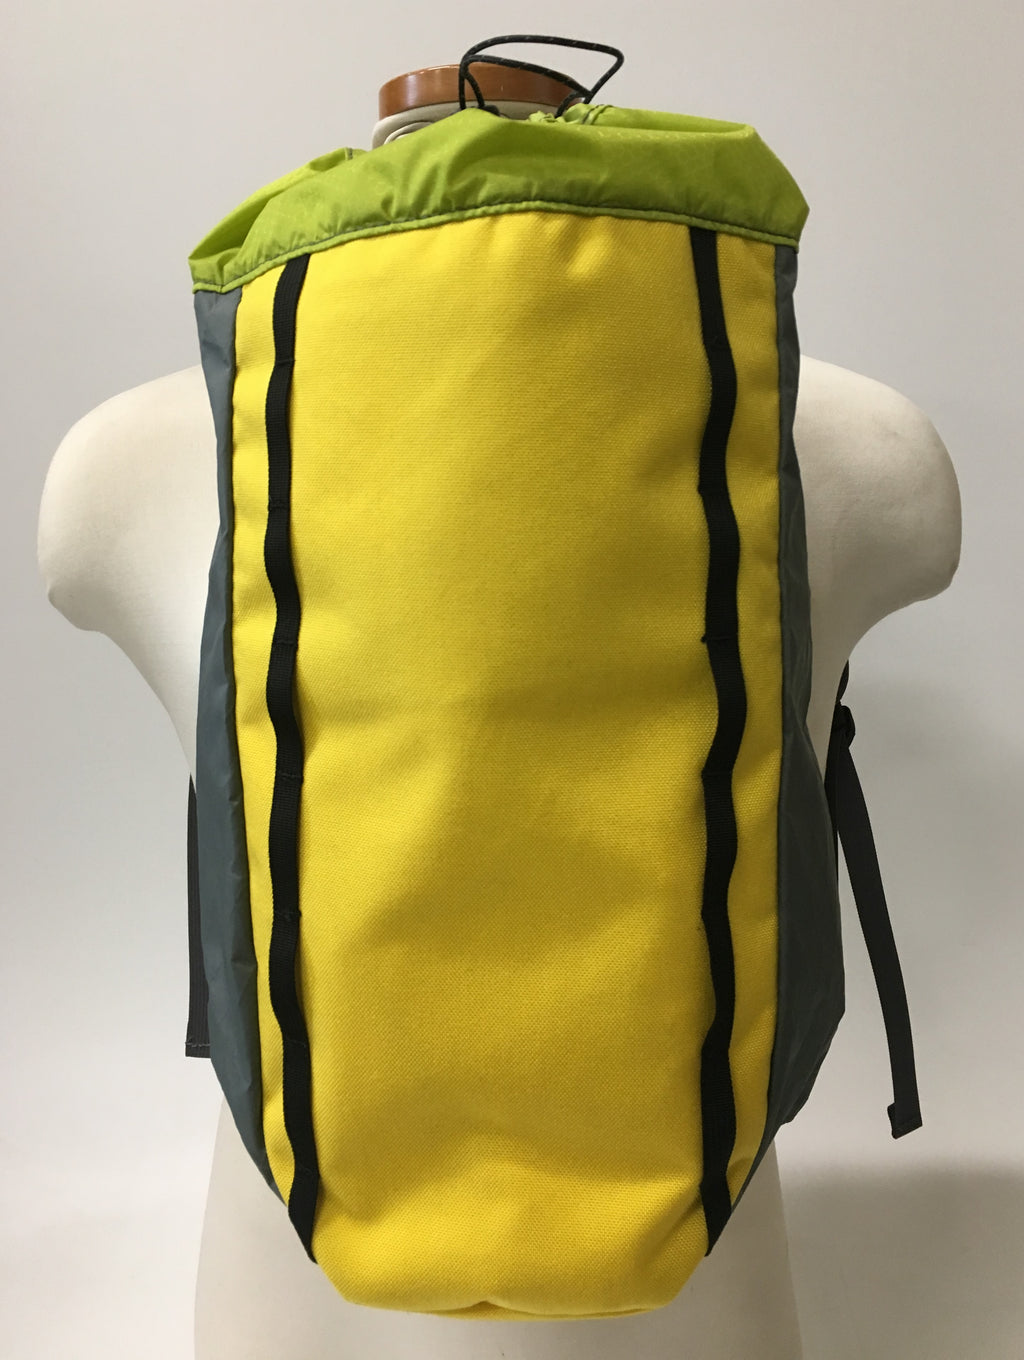 LUSB171 Ultralight Day Pack Yellow/Green/Grey Front View